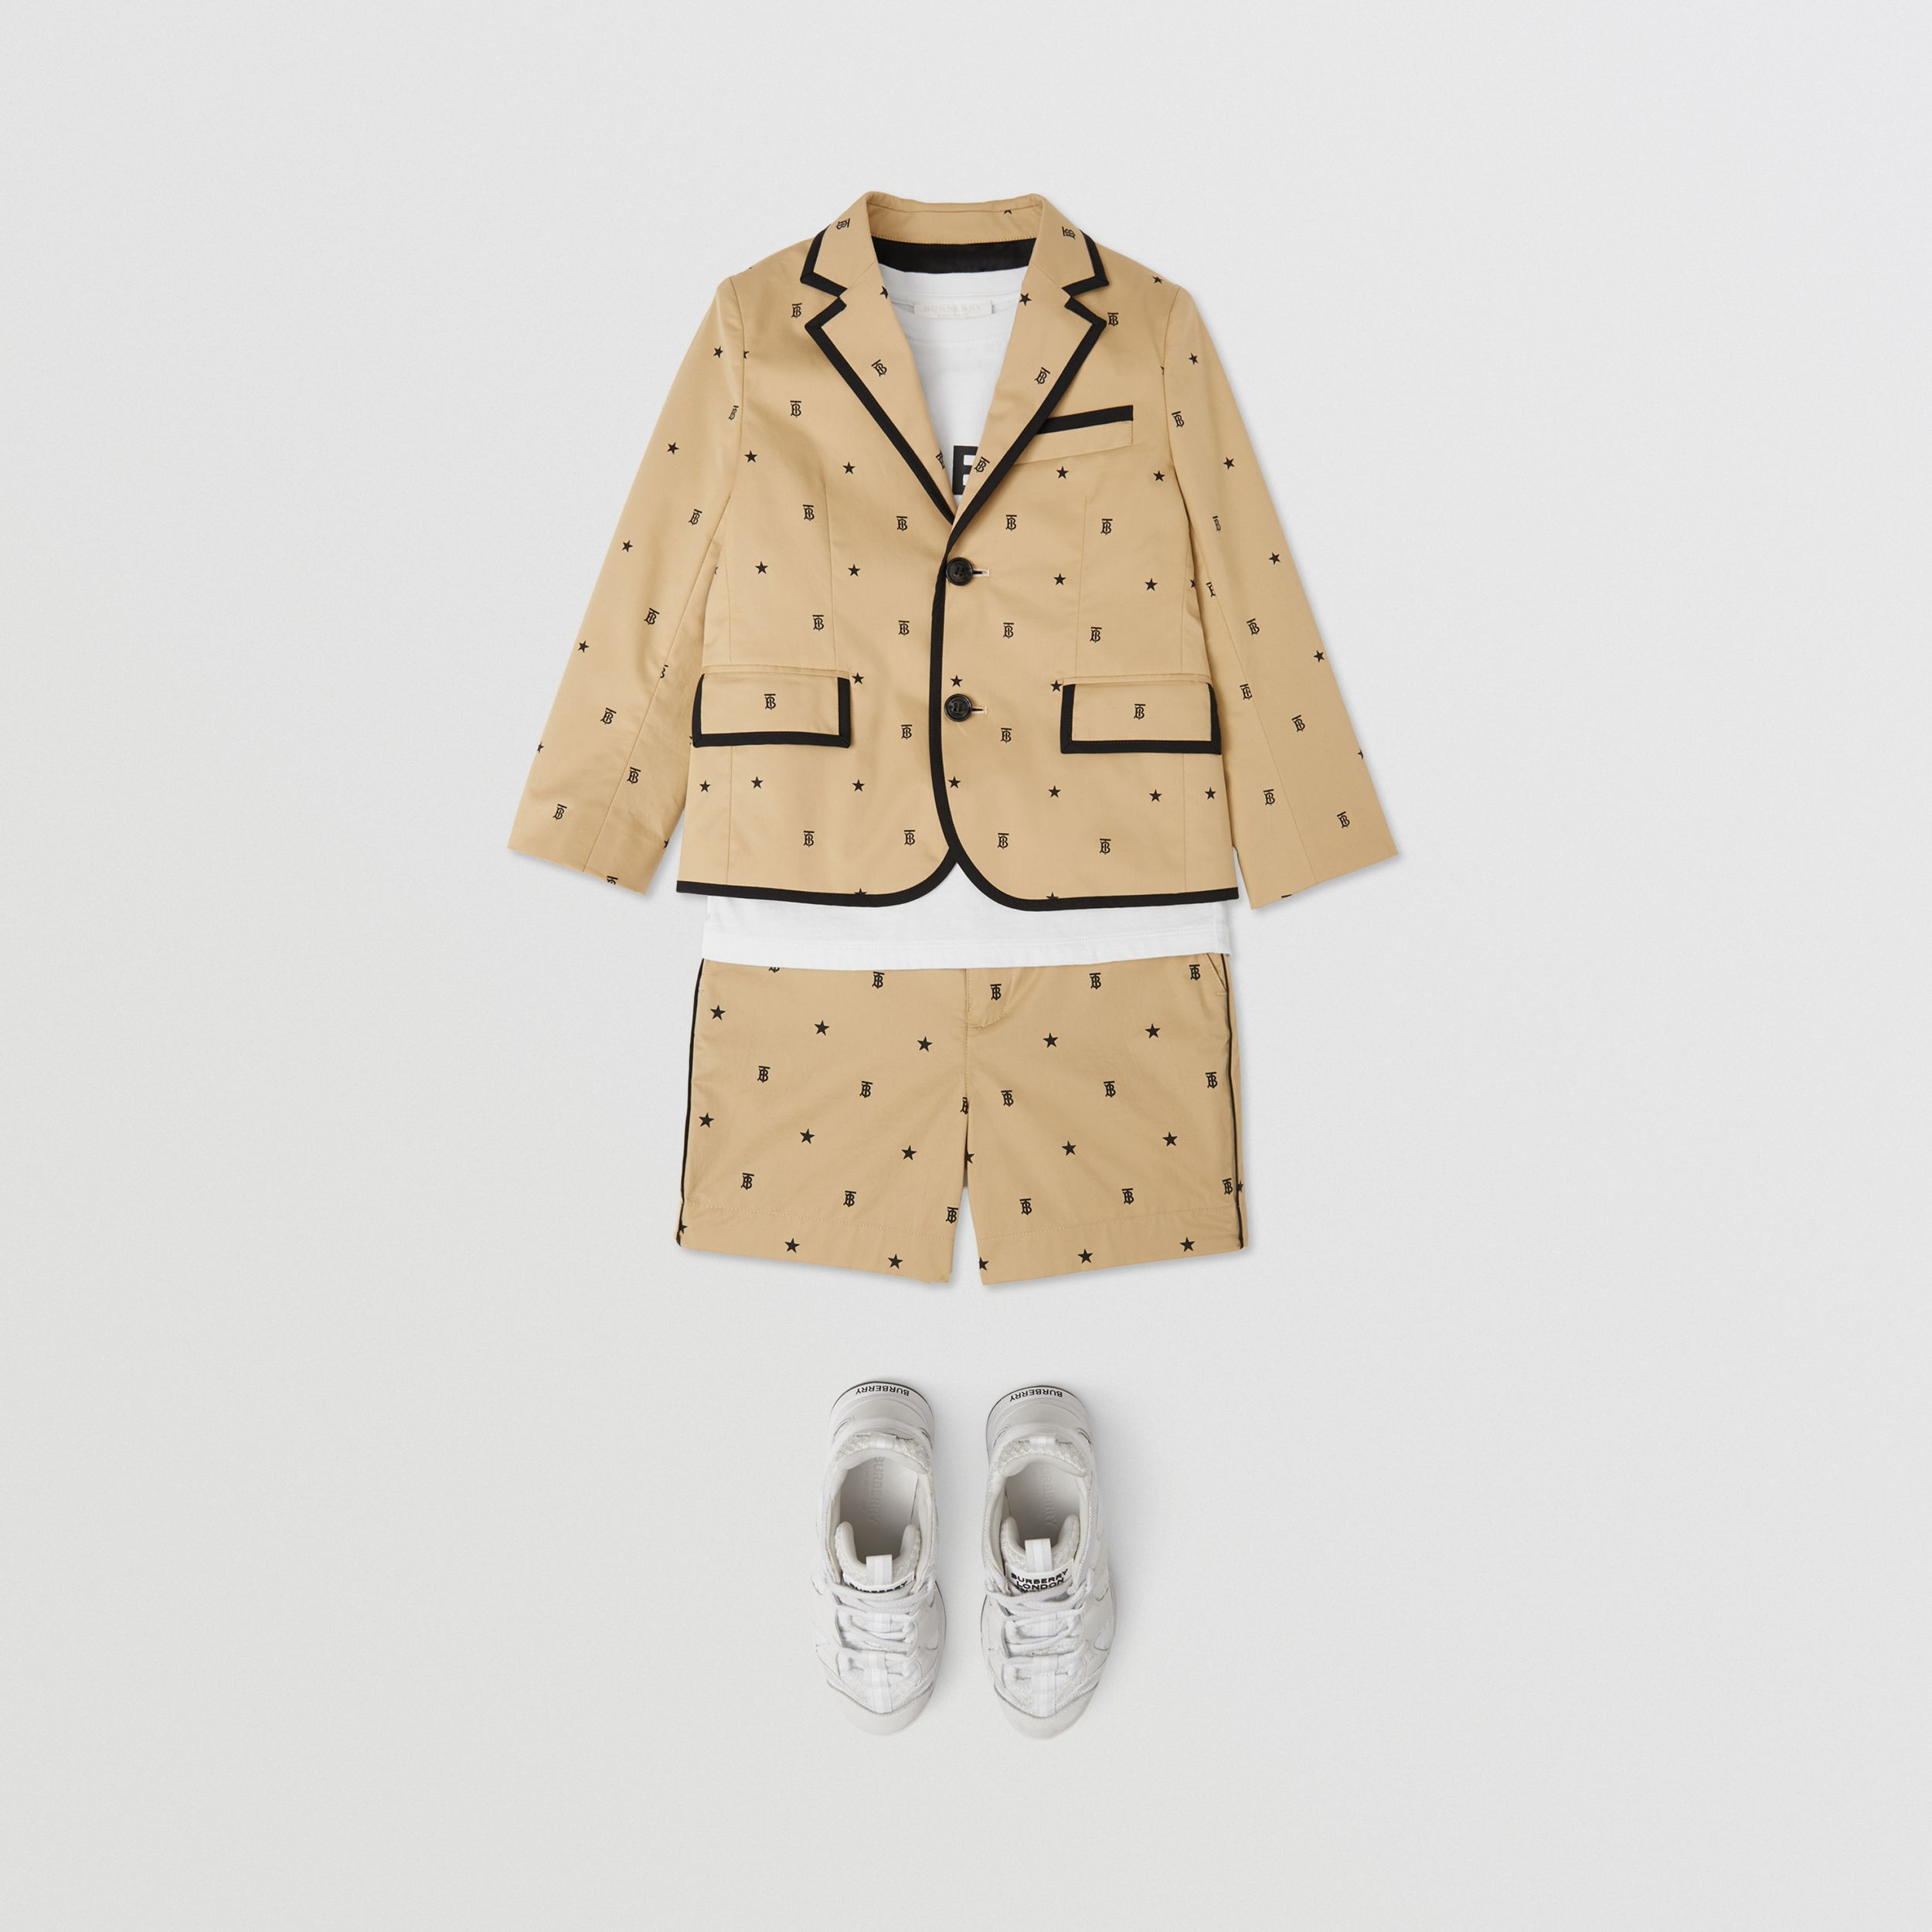 Star and Monogram Motif Stretch Cotton Blazer in Sand | Burberry - 3